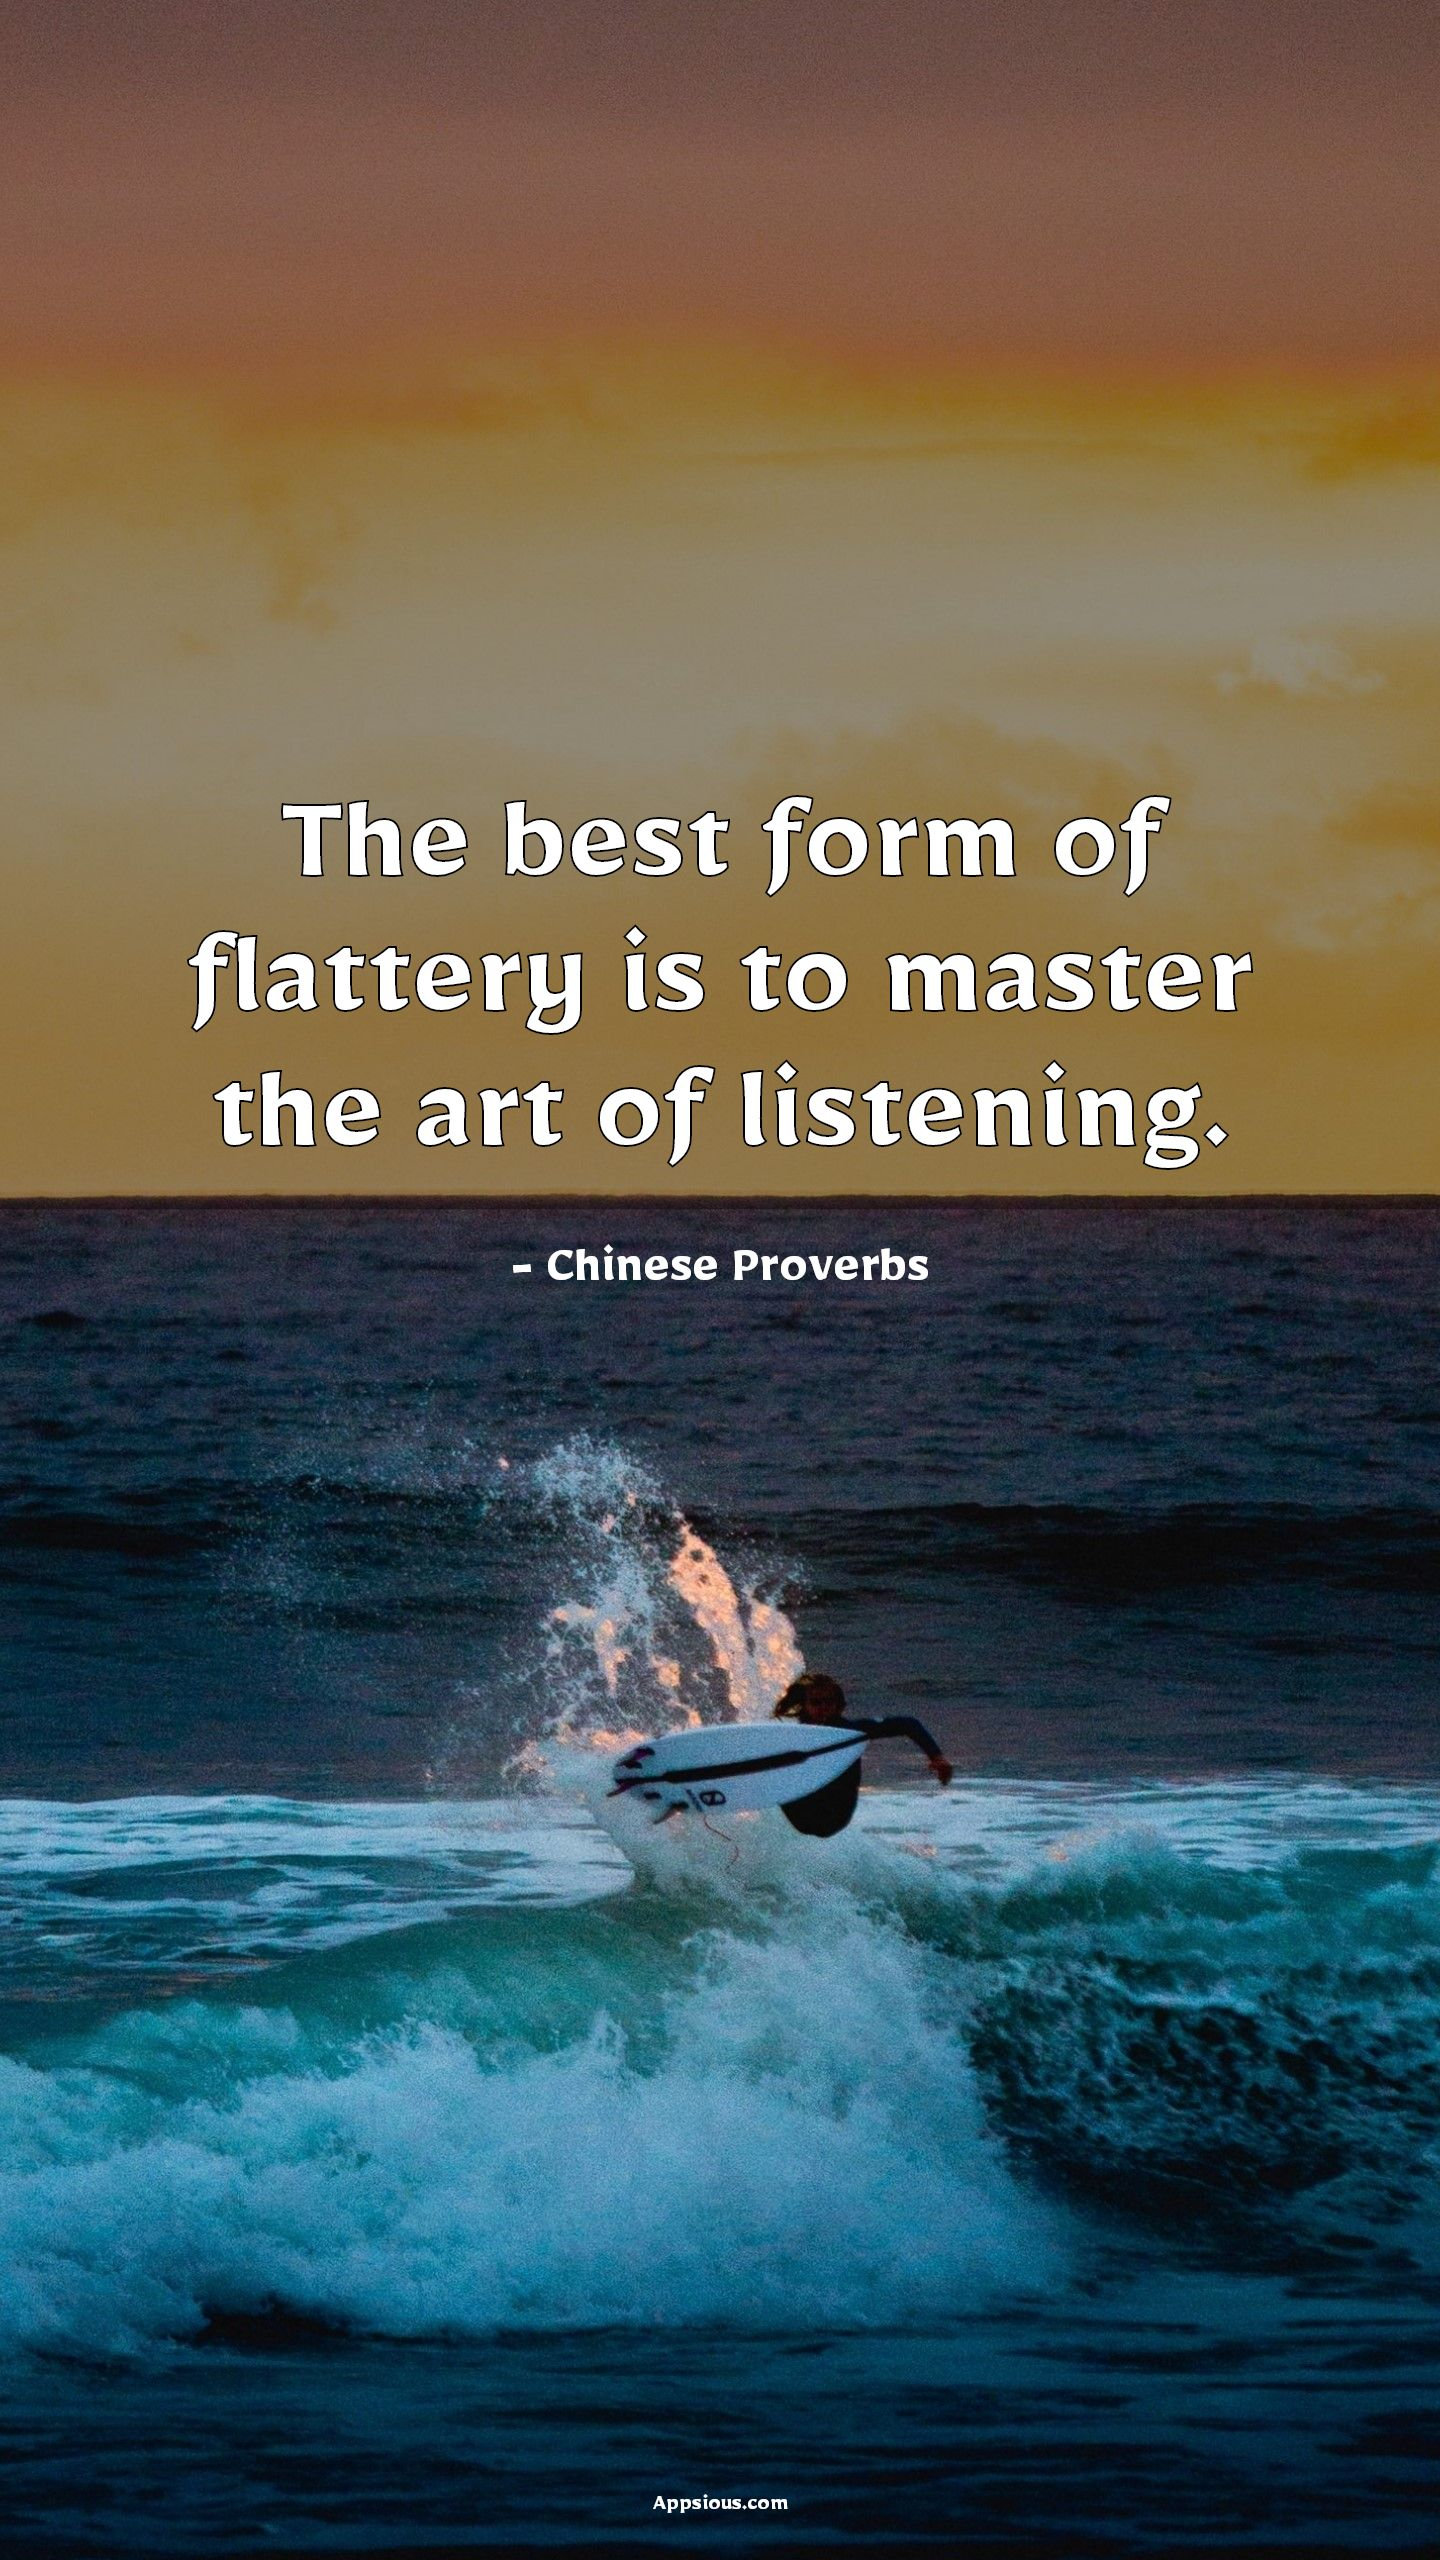 The best form of flattery is to master the art of listening.